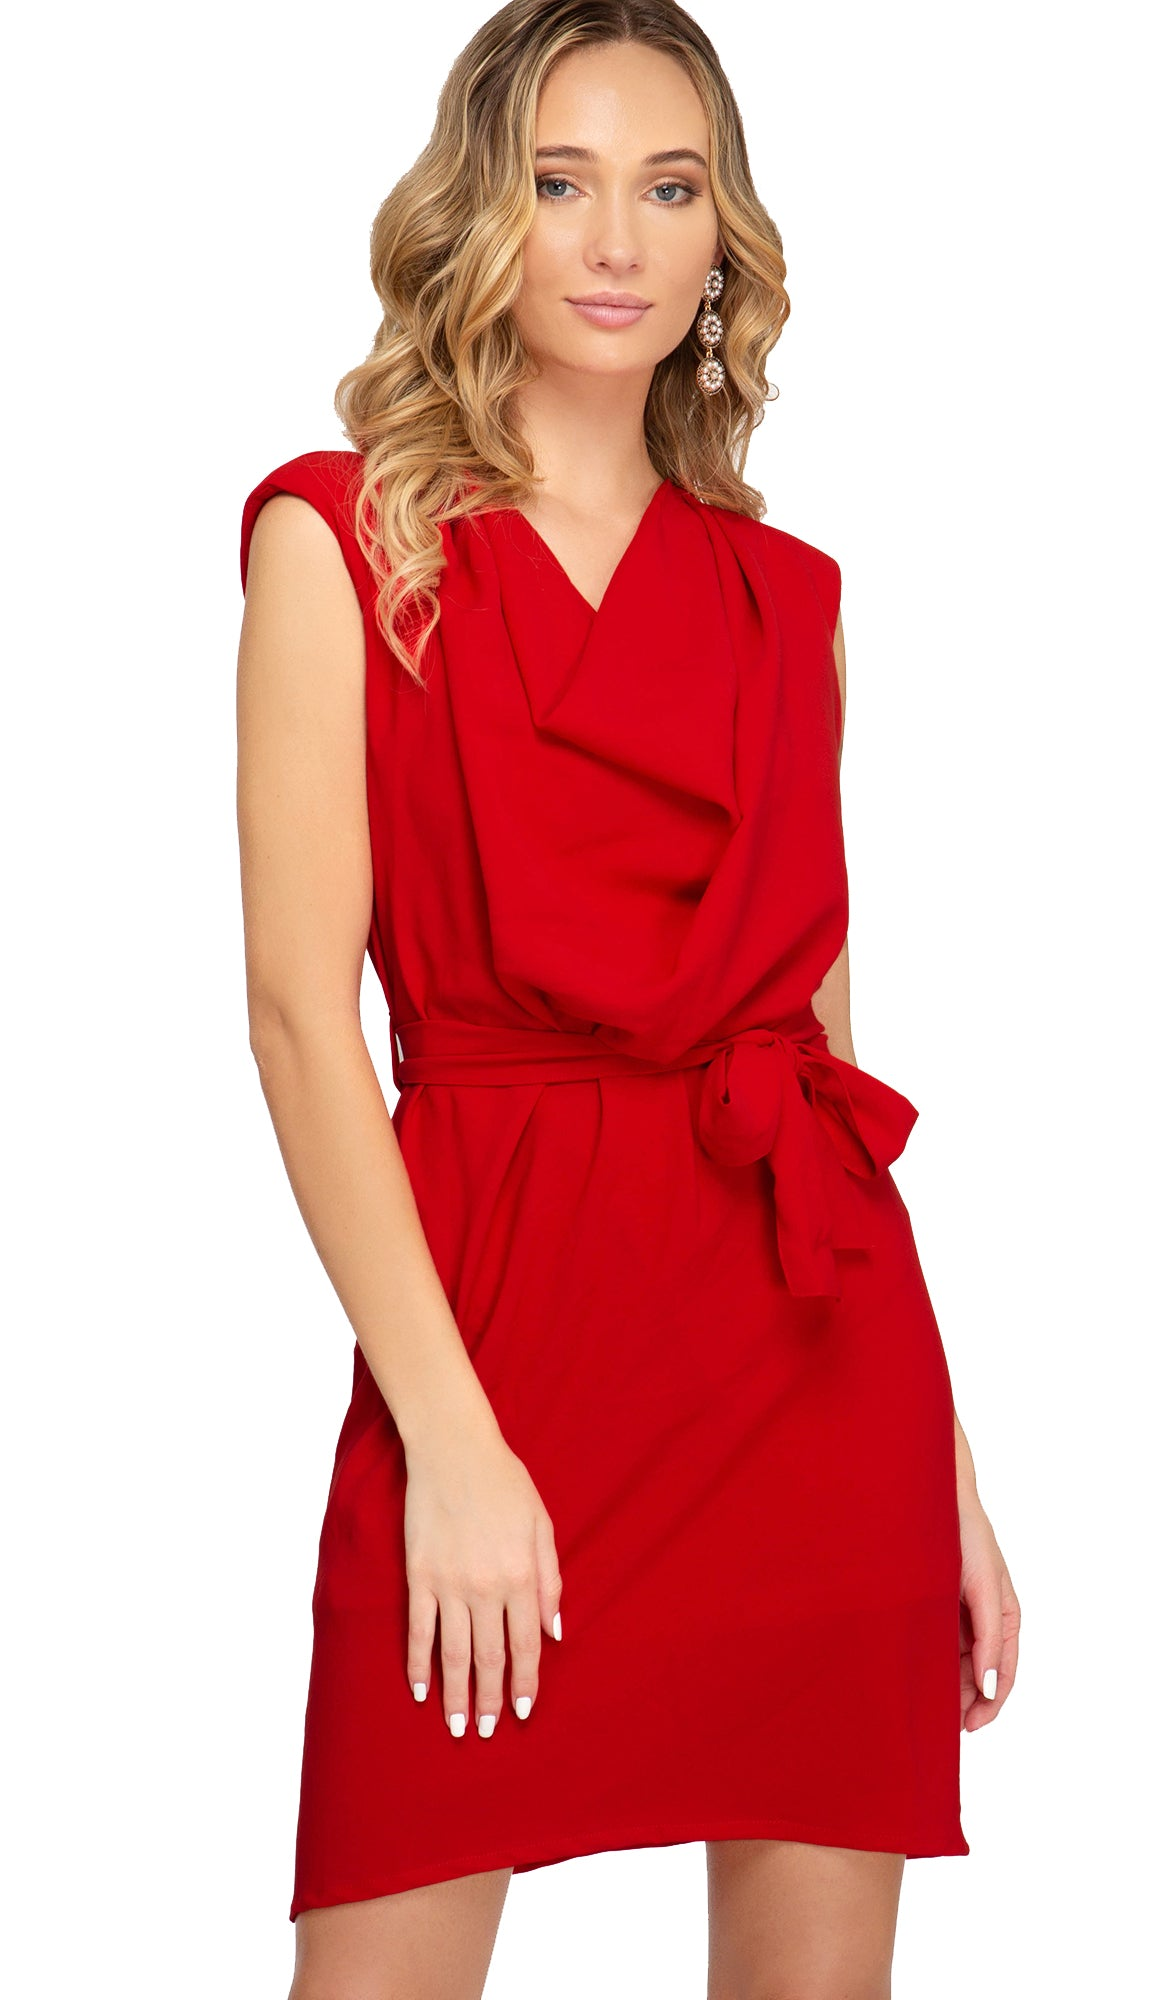 Red Hot Dress- Red